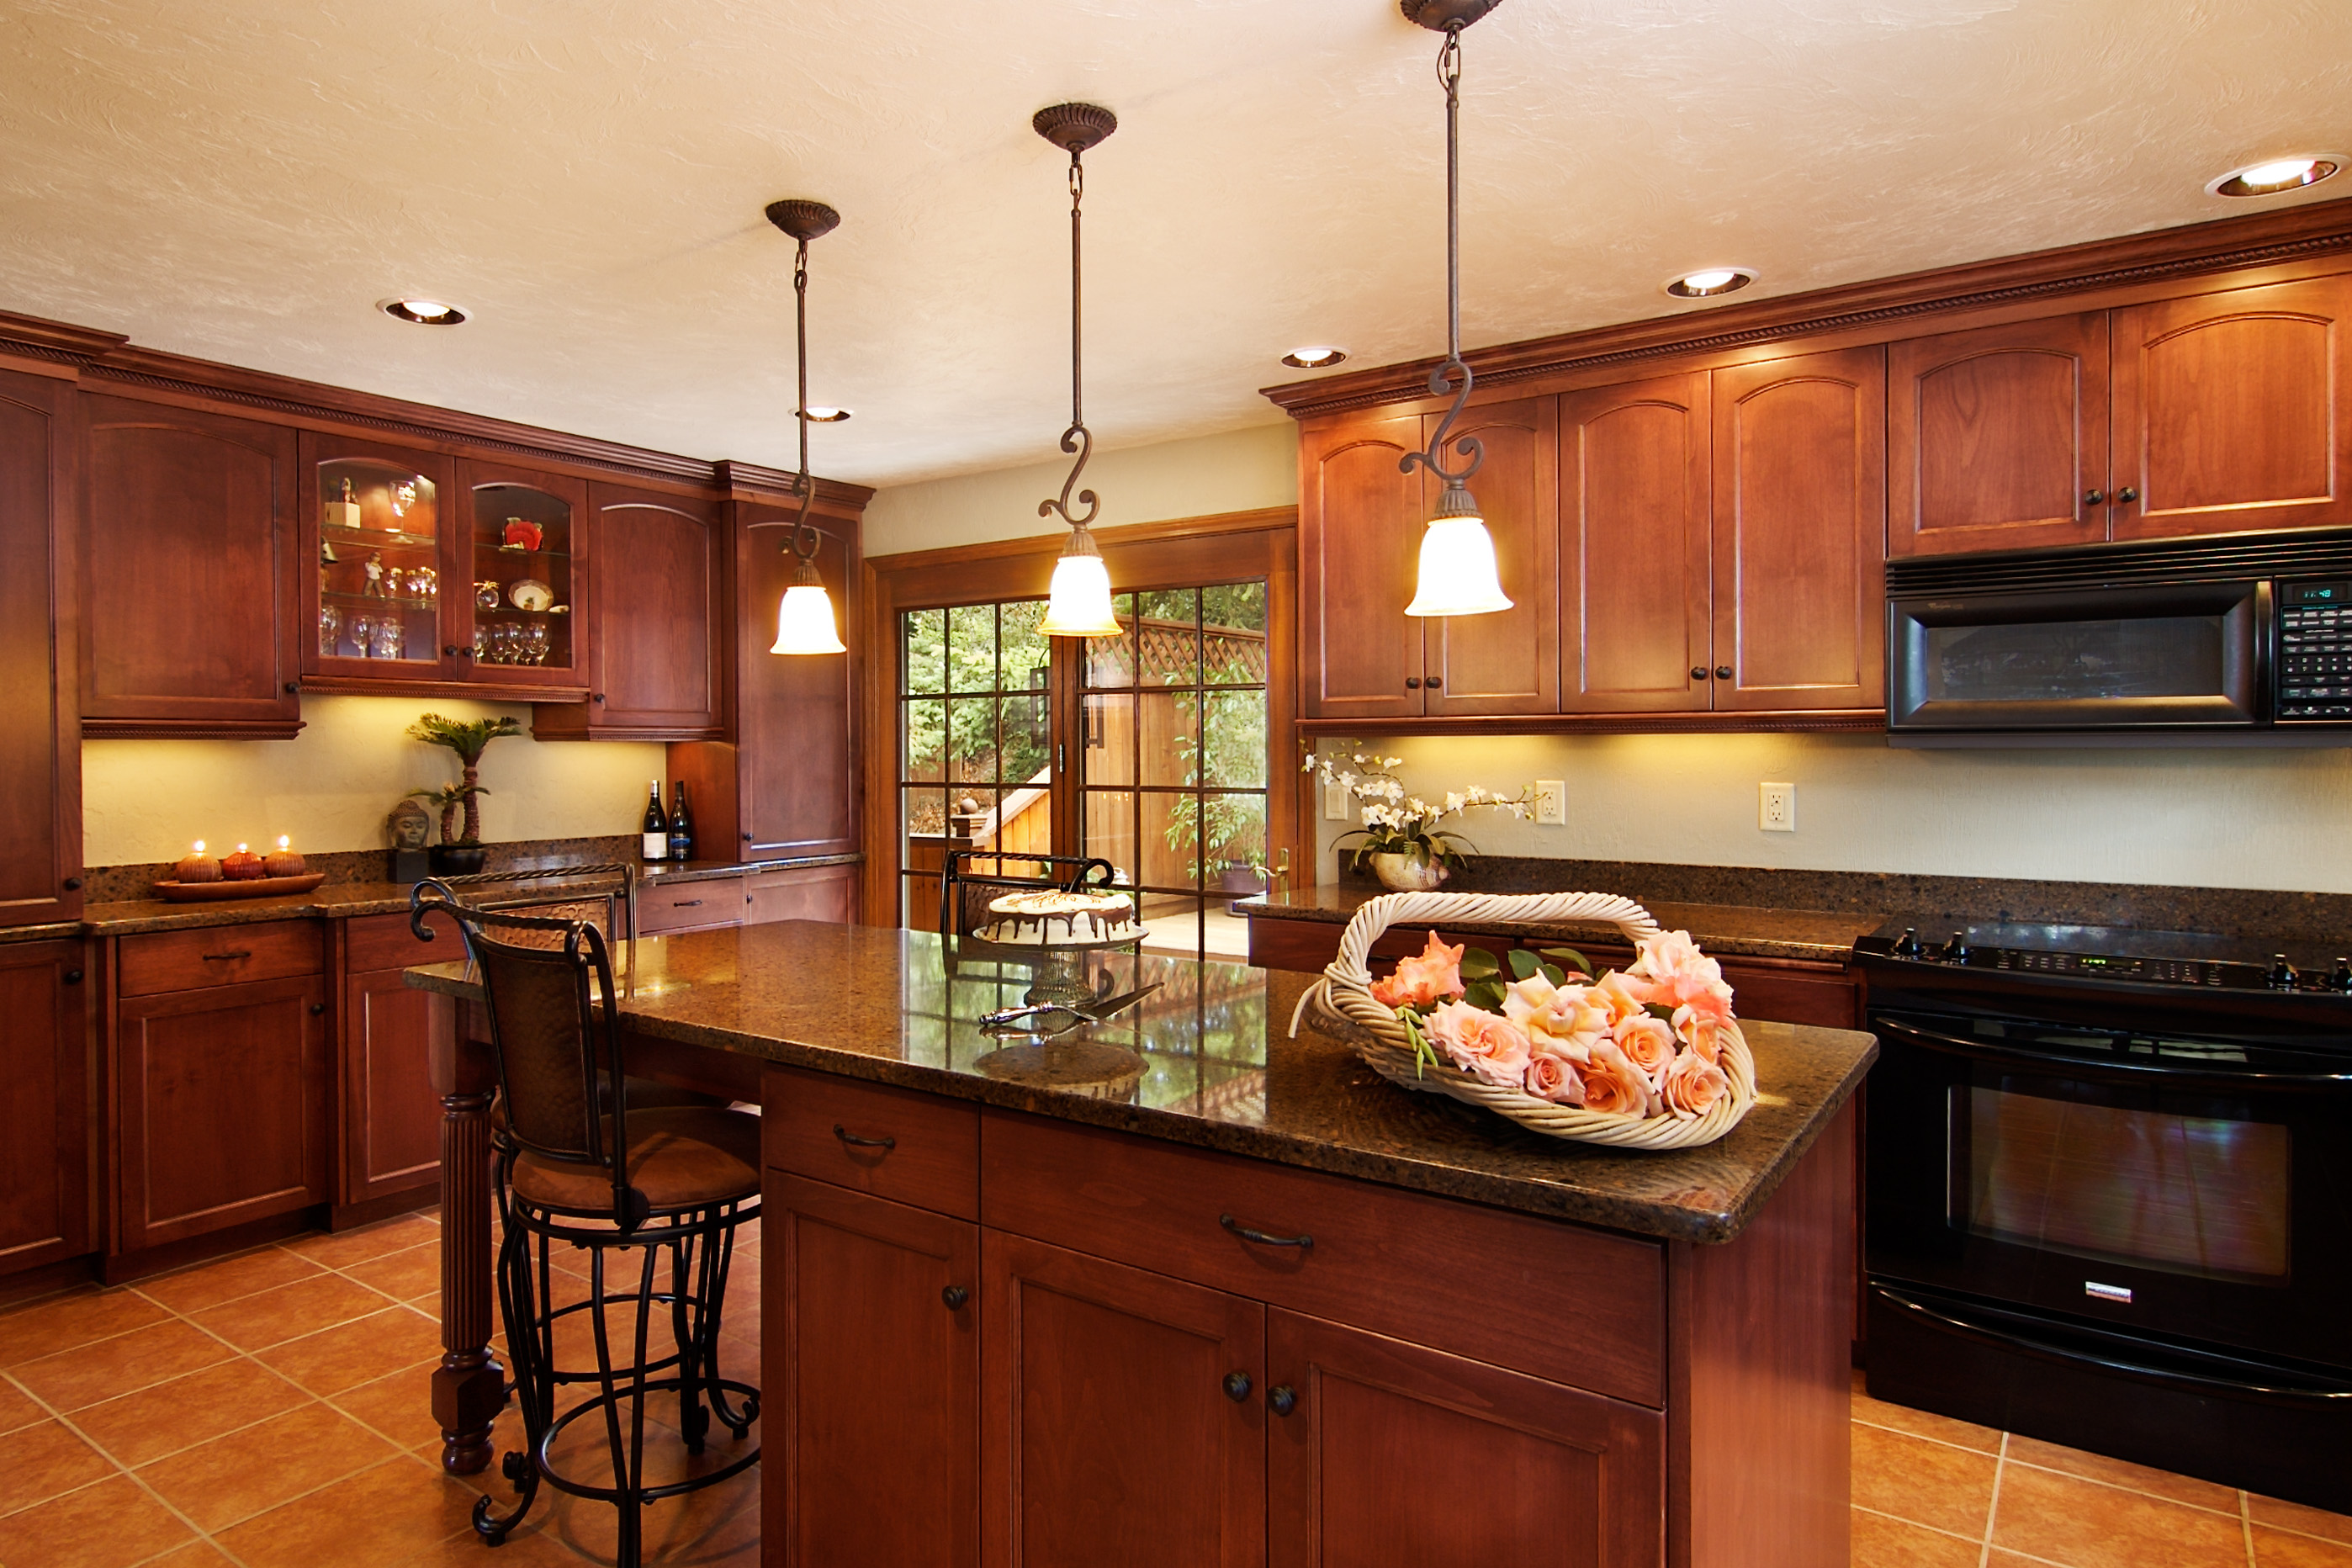 ideas to utilize kitchen shelf at its best remodeling kitchen ideas 4 Top Most Things to Consider While Remodeling Your Kitchen